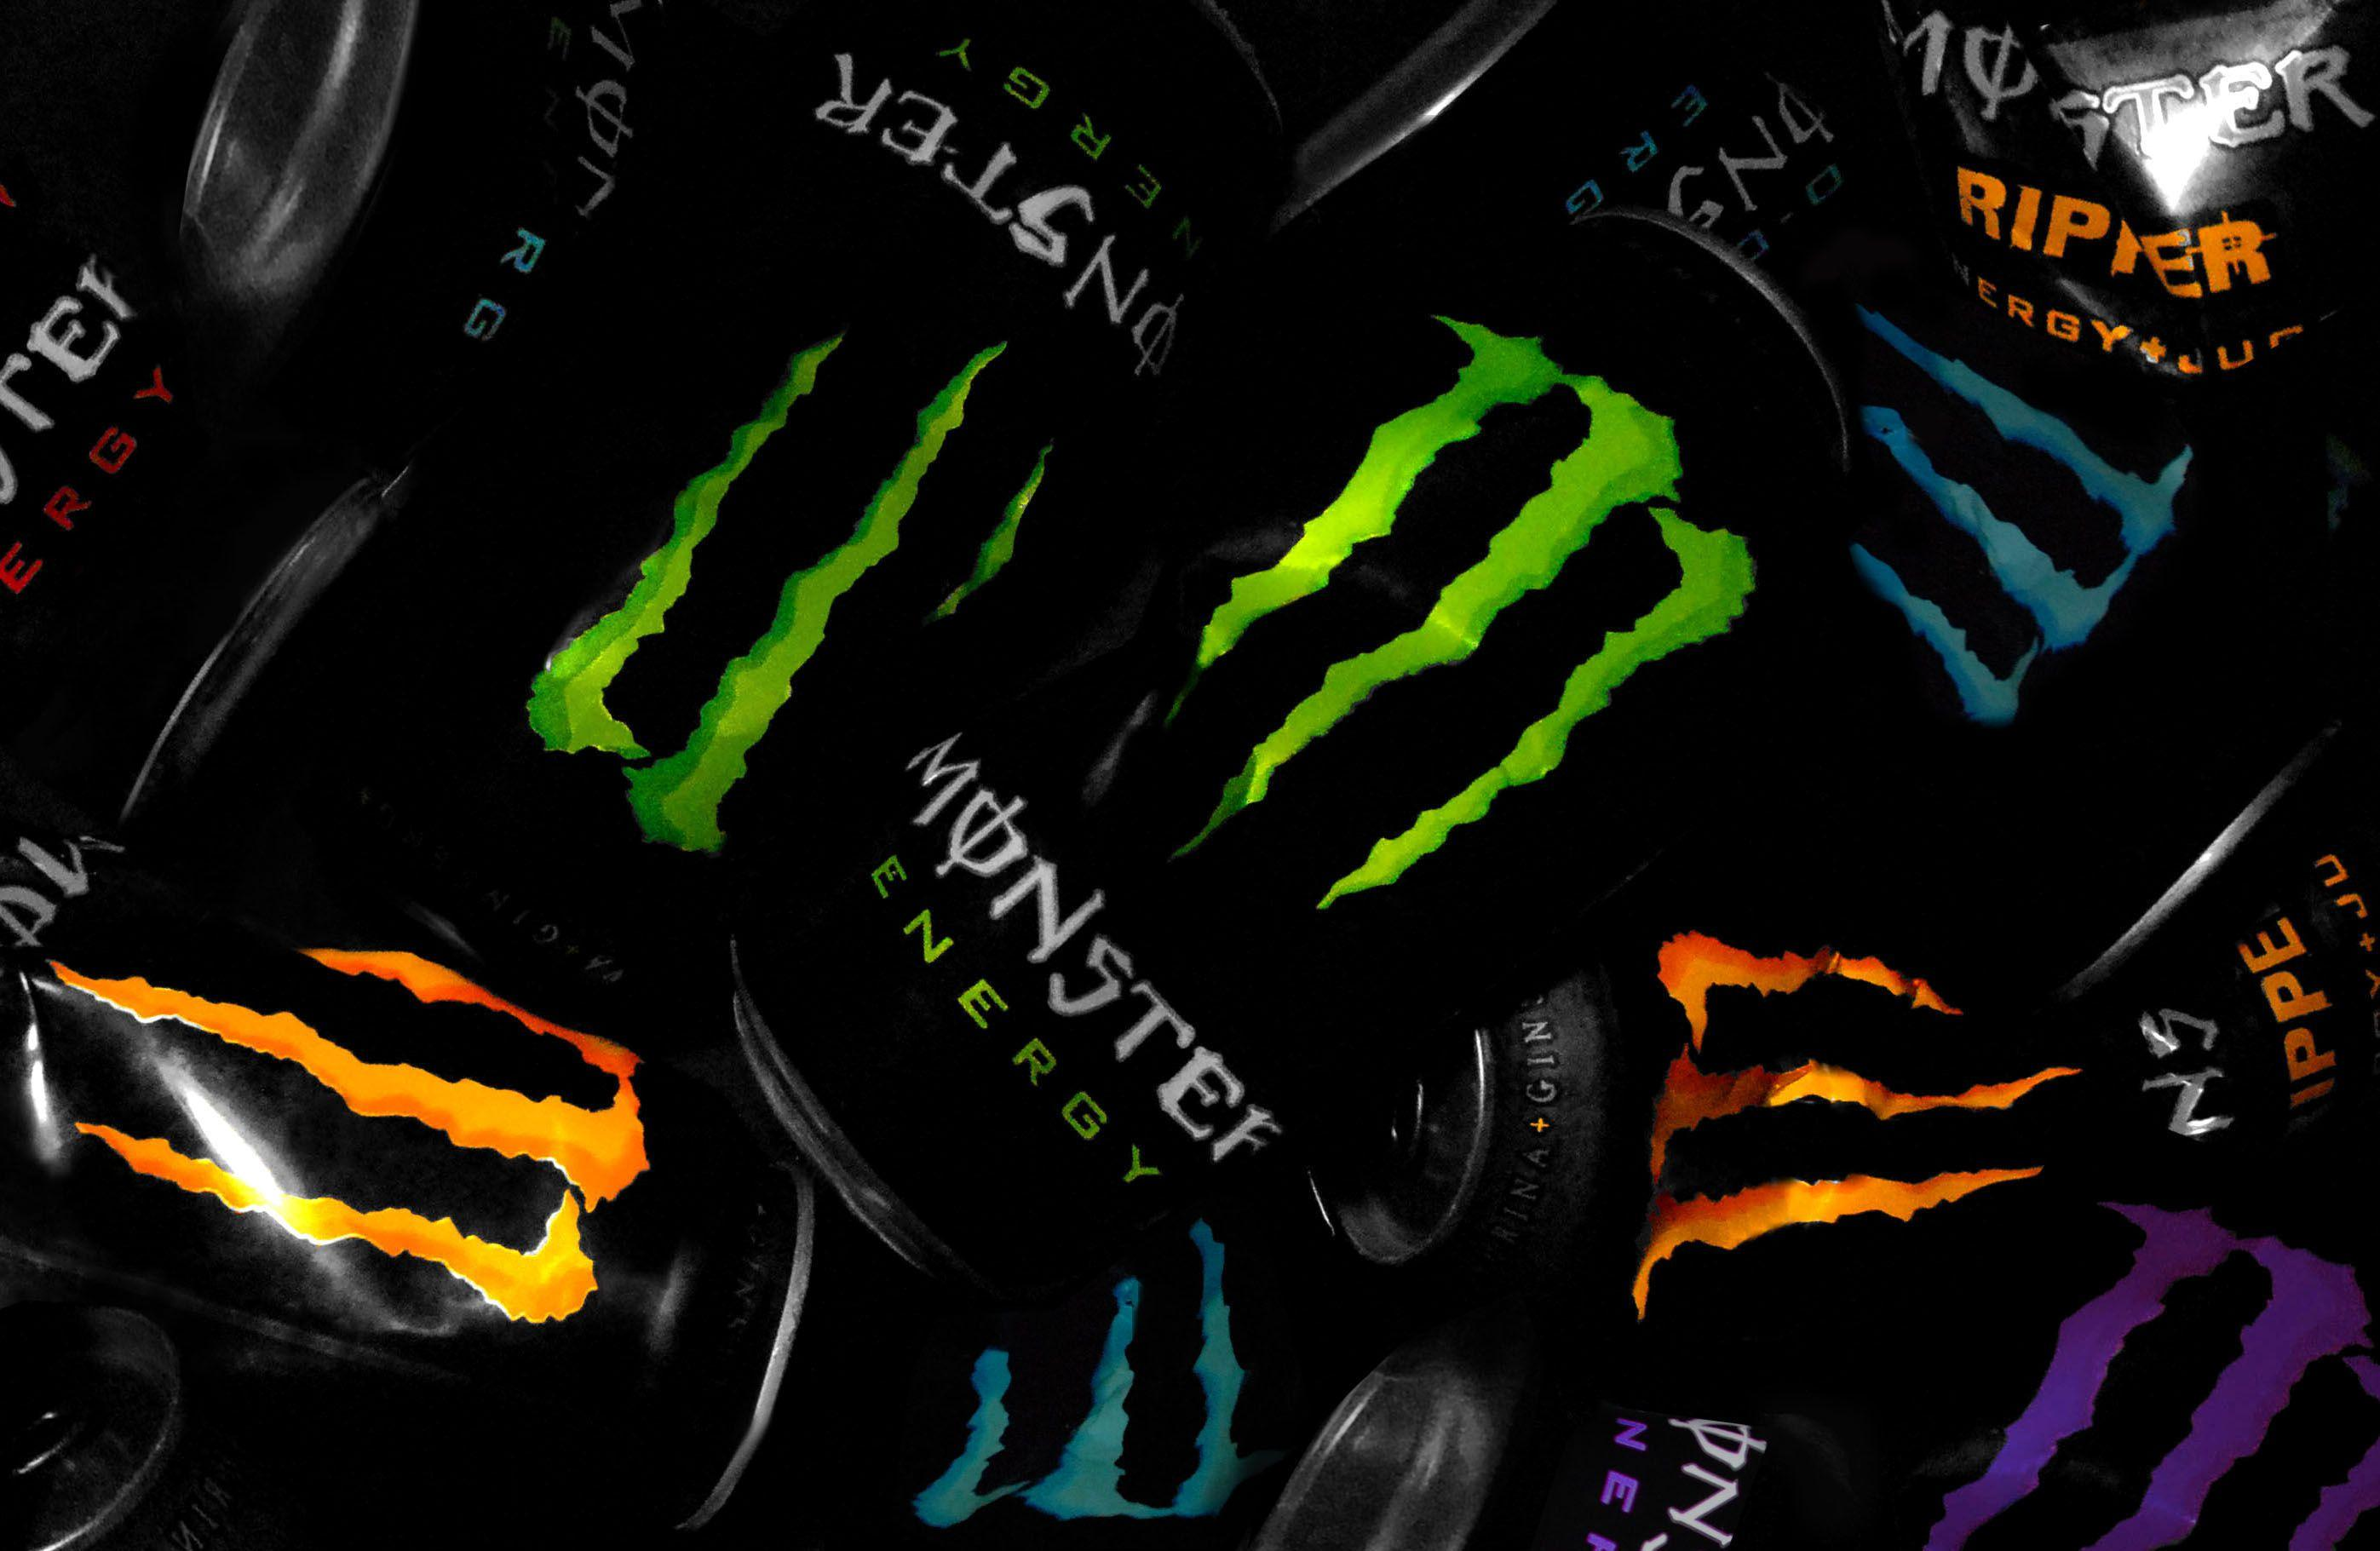 Many Monster Energy Tins Photo Picture HD Wallpaper Free | Monster ...